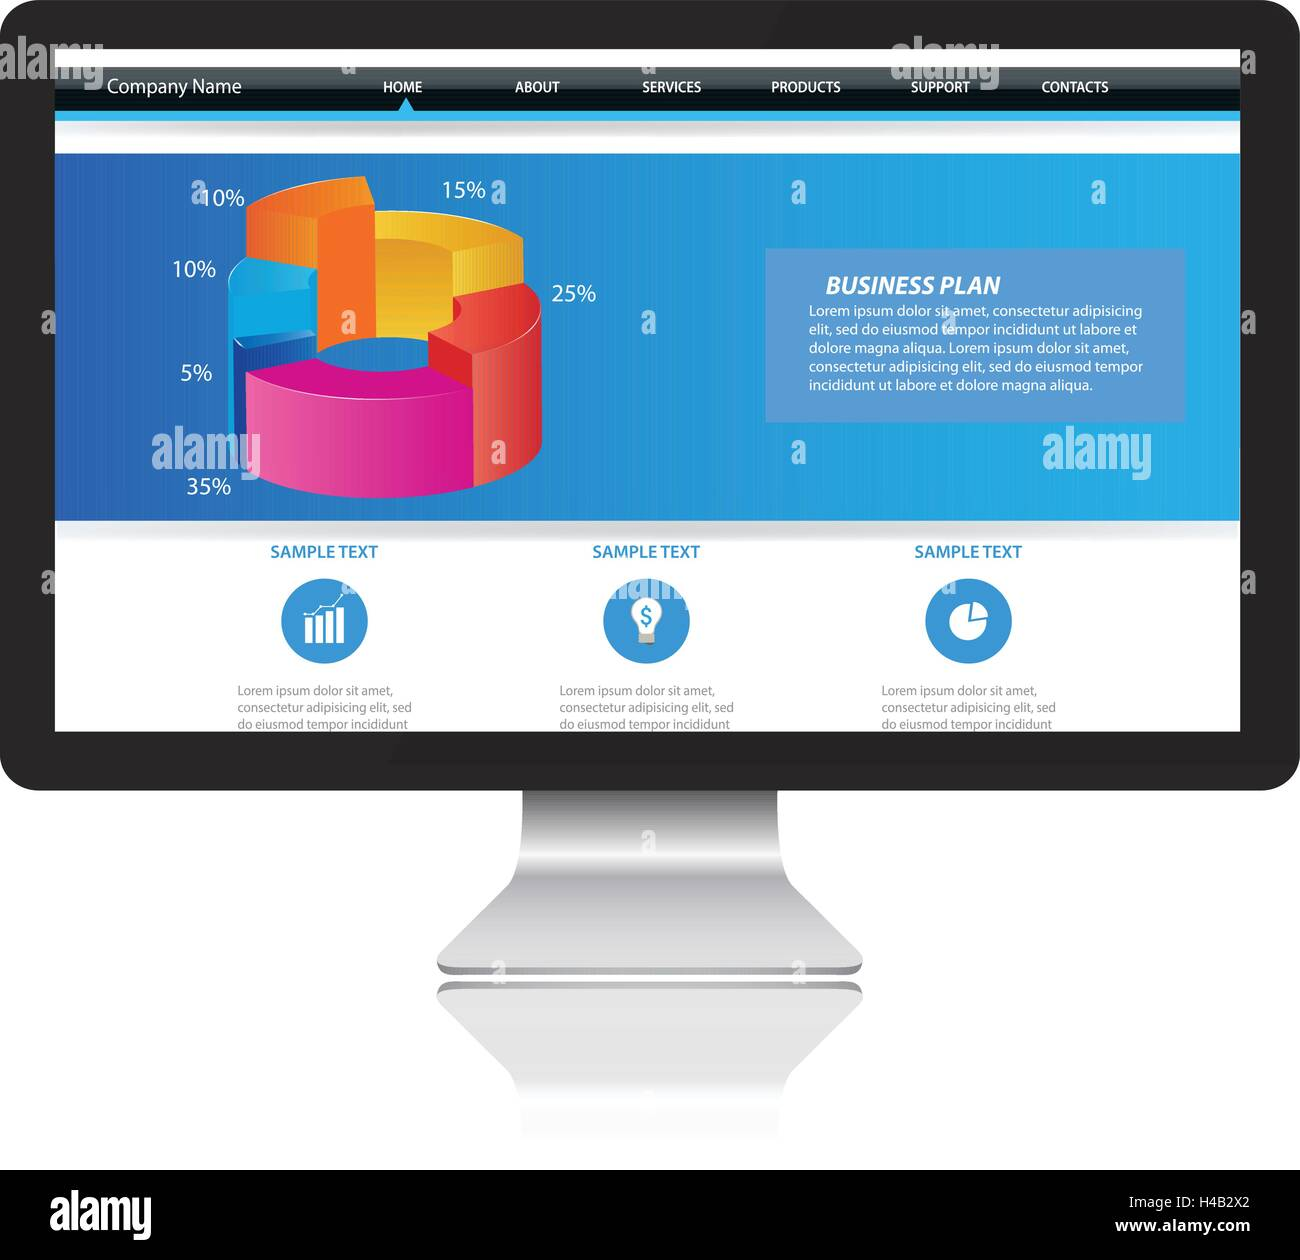 Responsive website template on Modern Computer monitor - Stock Image